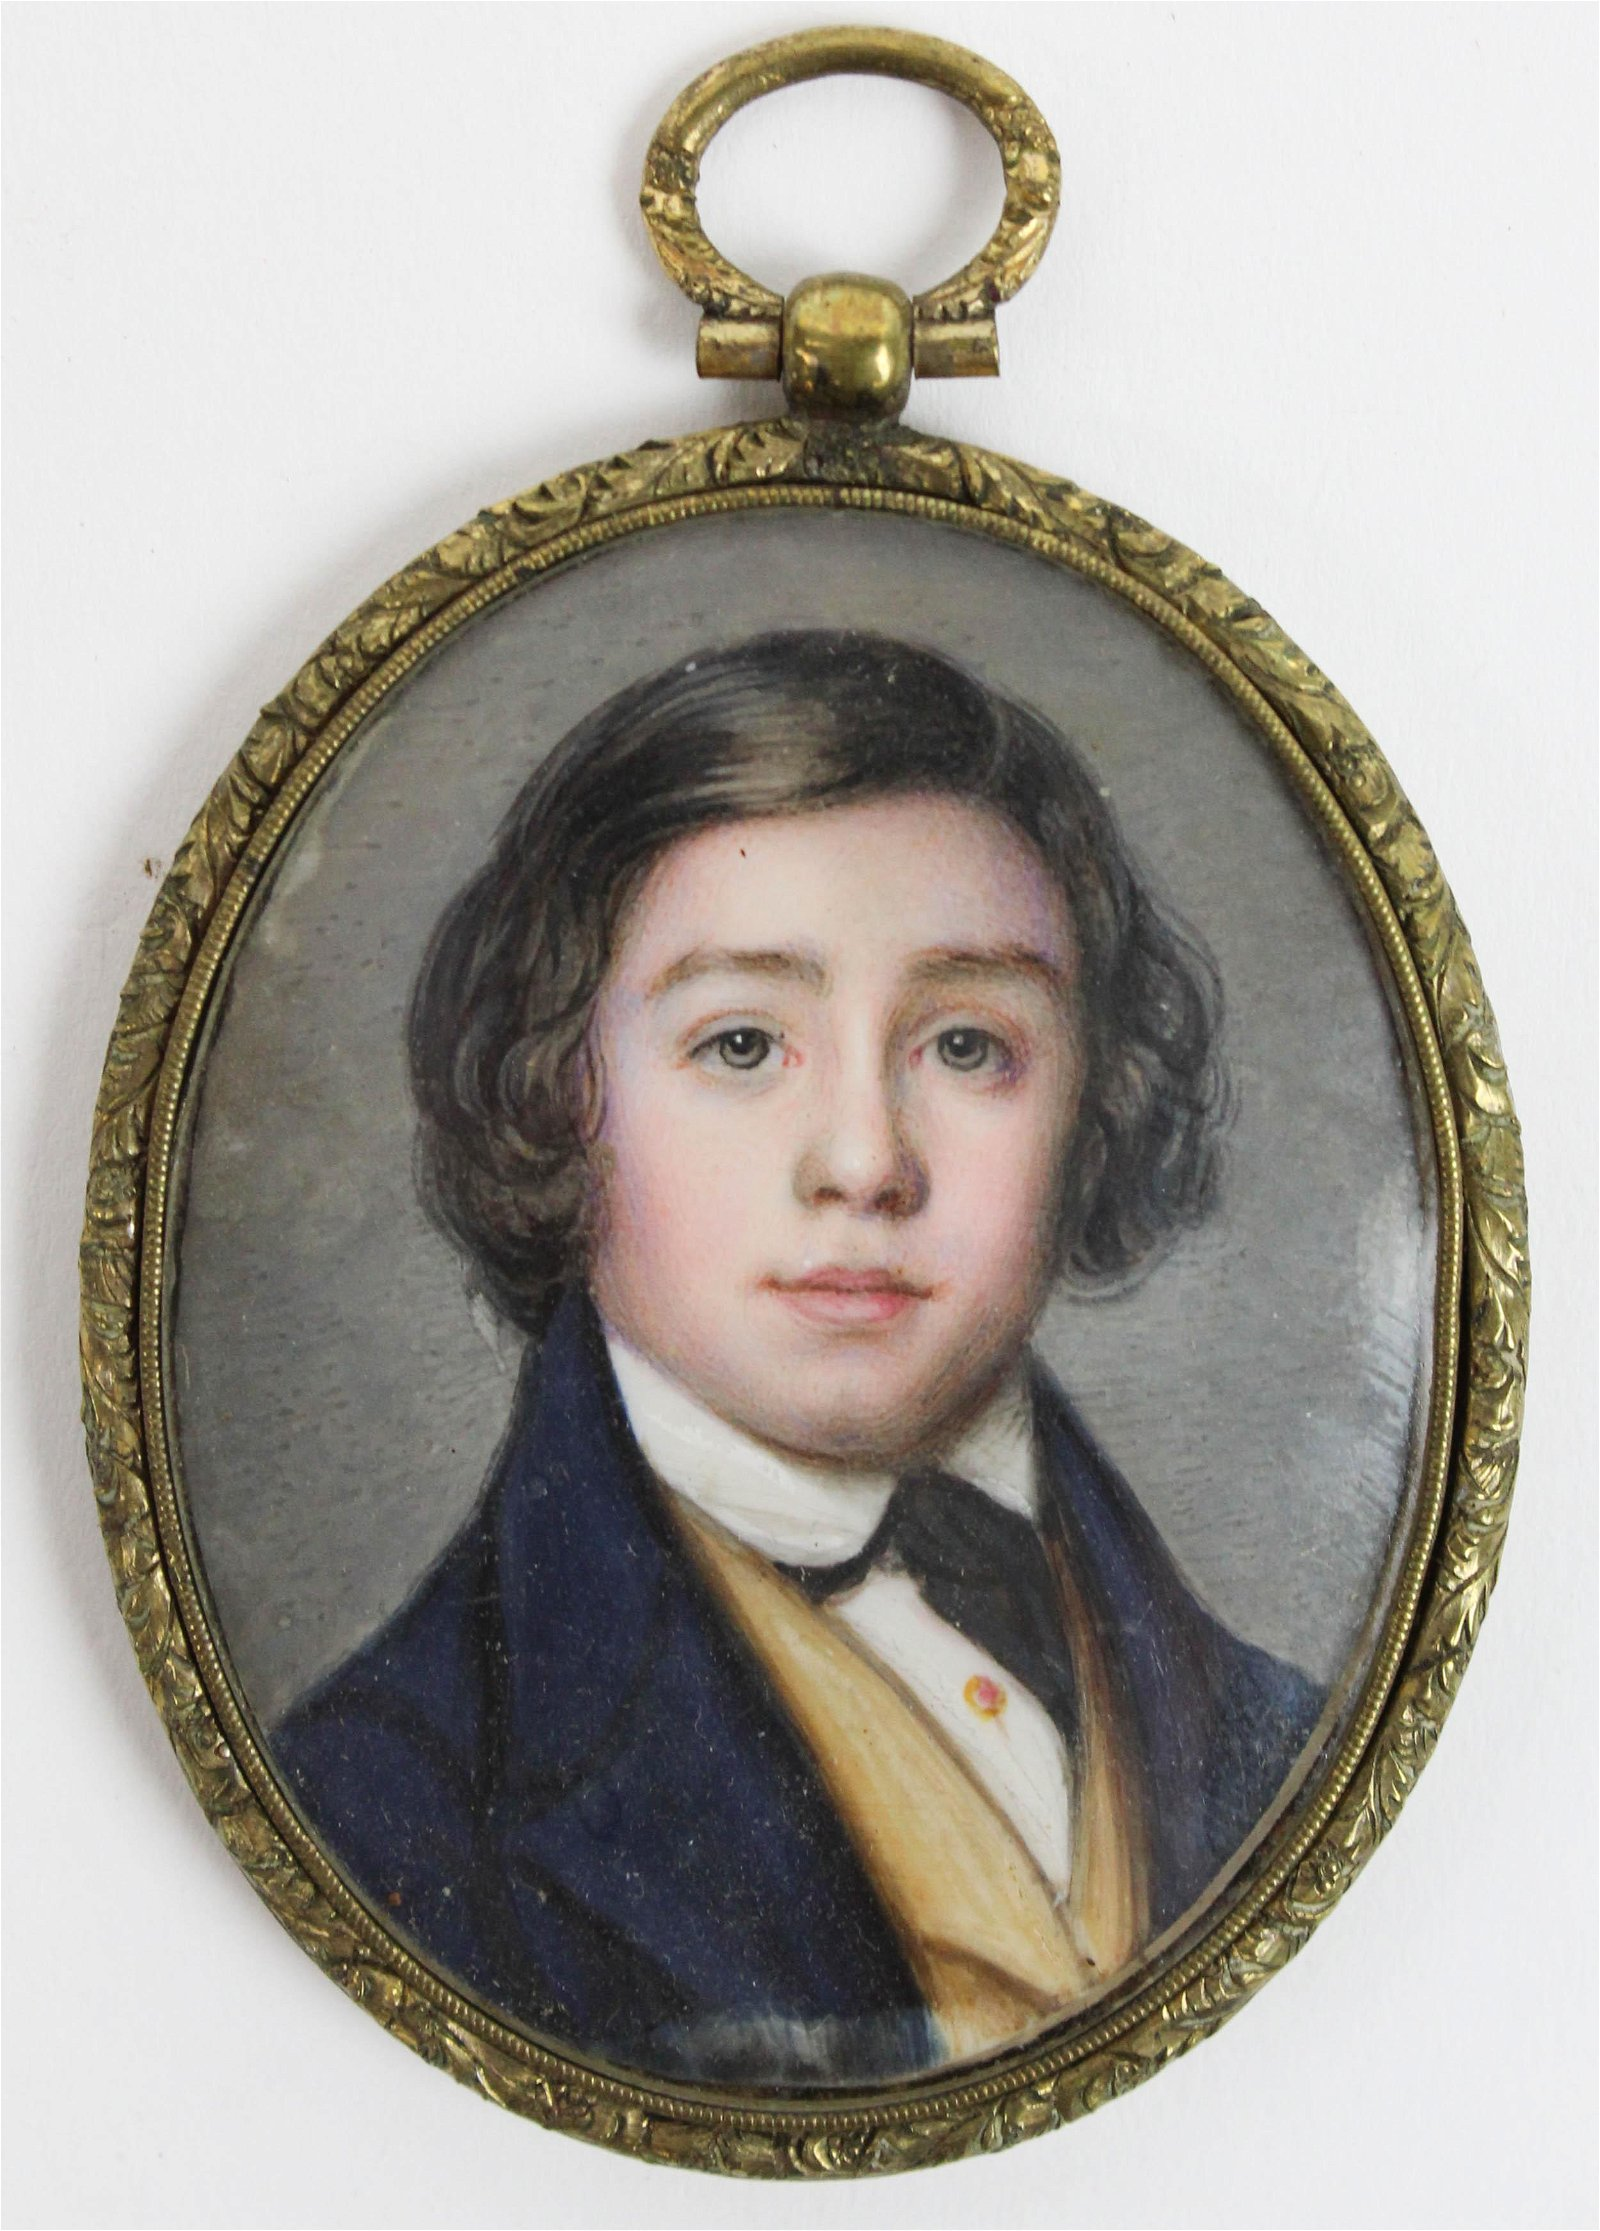 Miniature Portrait of a Handsome Young Man